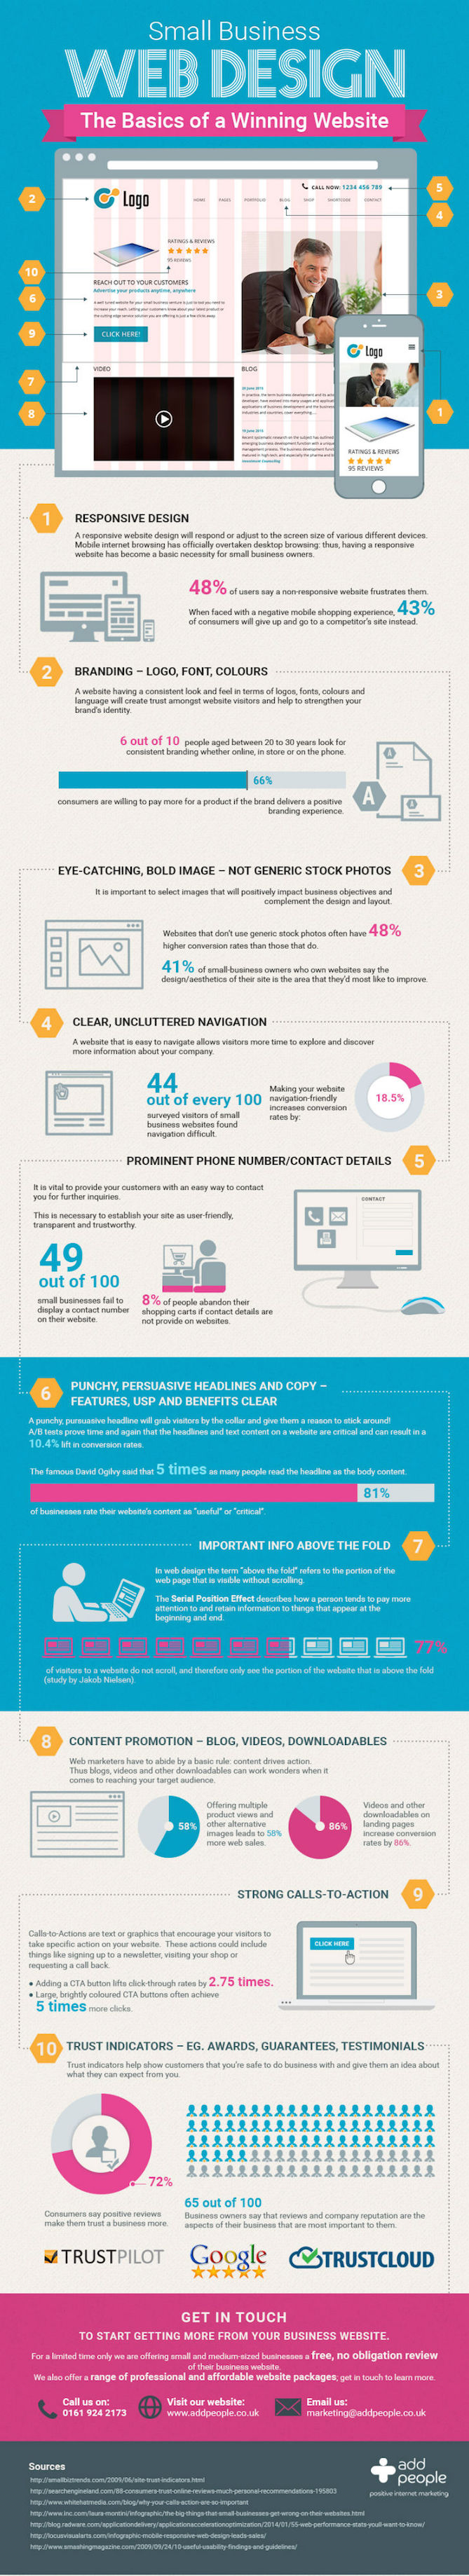 The Anatomy of a Winning Website Design [Infographic]